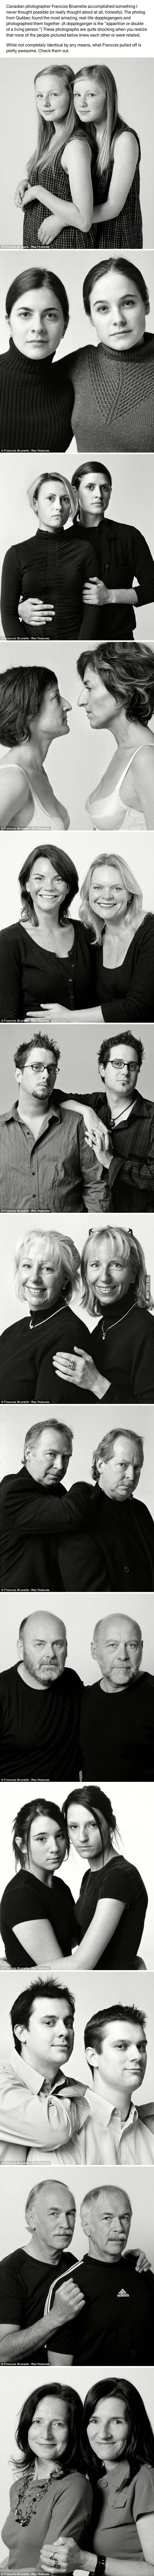 These 13 People Are Not Twins. What's Even More Unbelievable… They've Never Even Met Til Now.